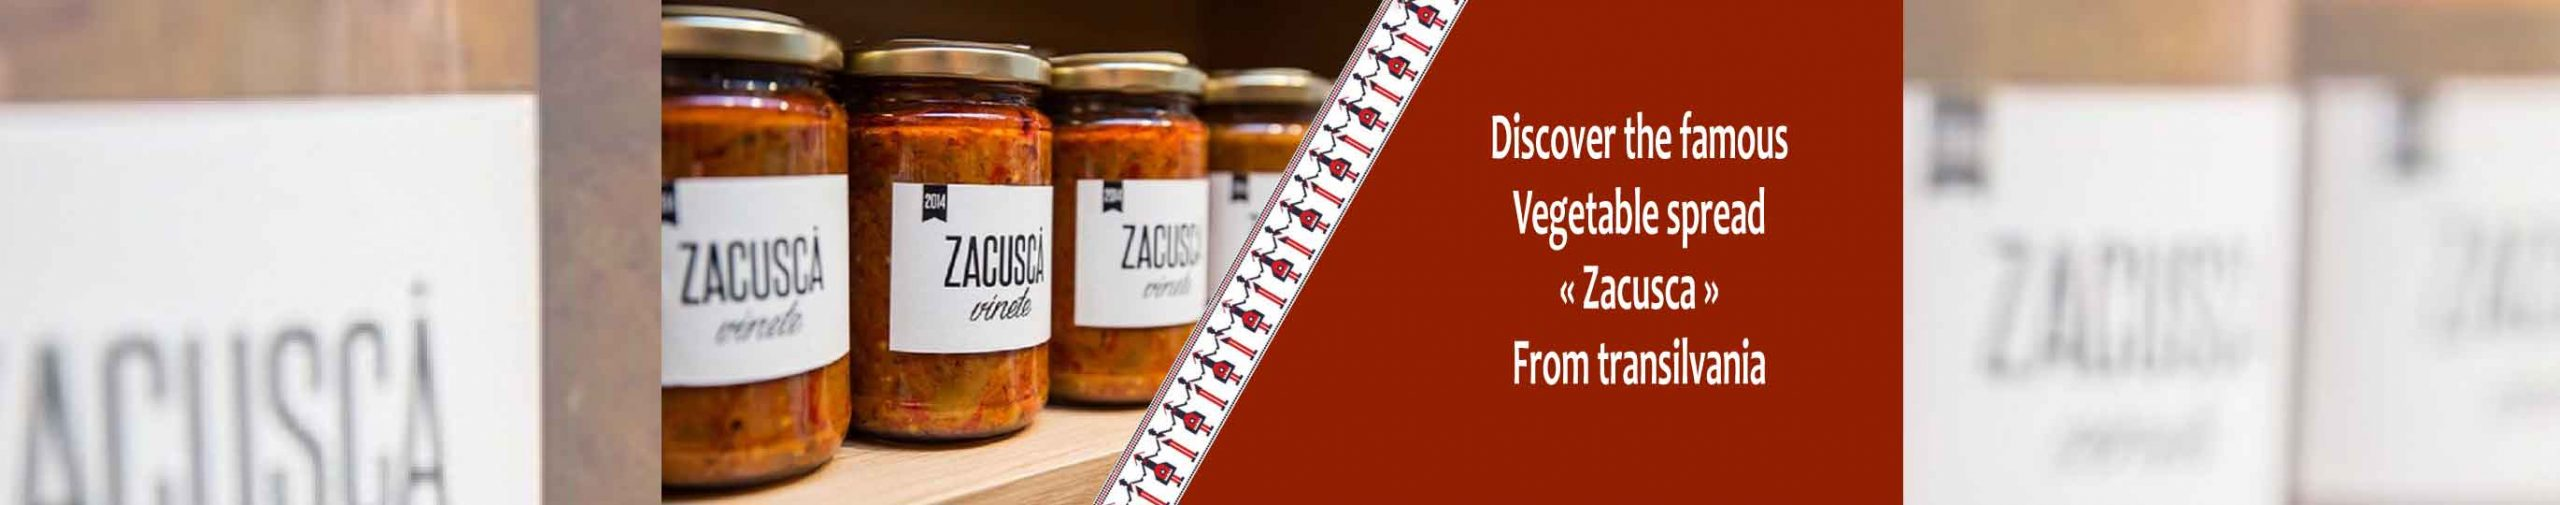 discover traditional vegetable spread zacusca from transilvania